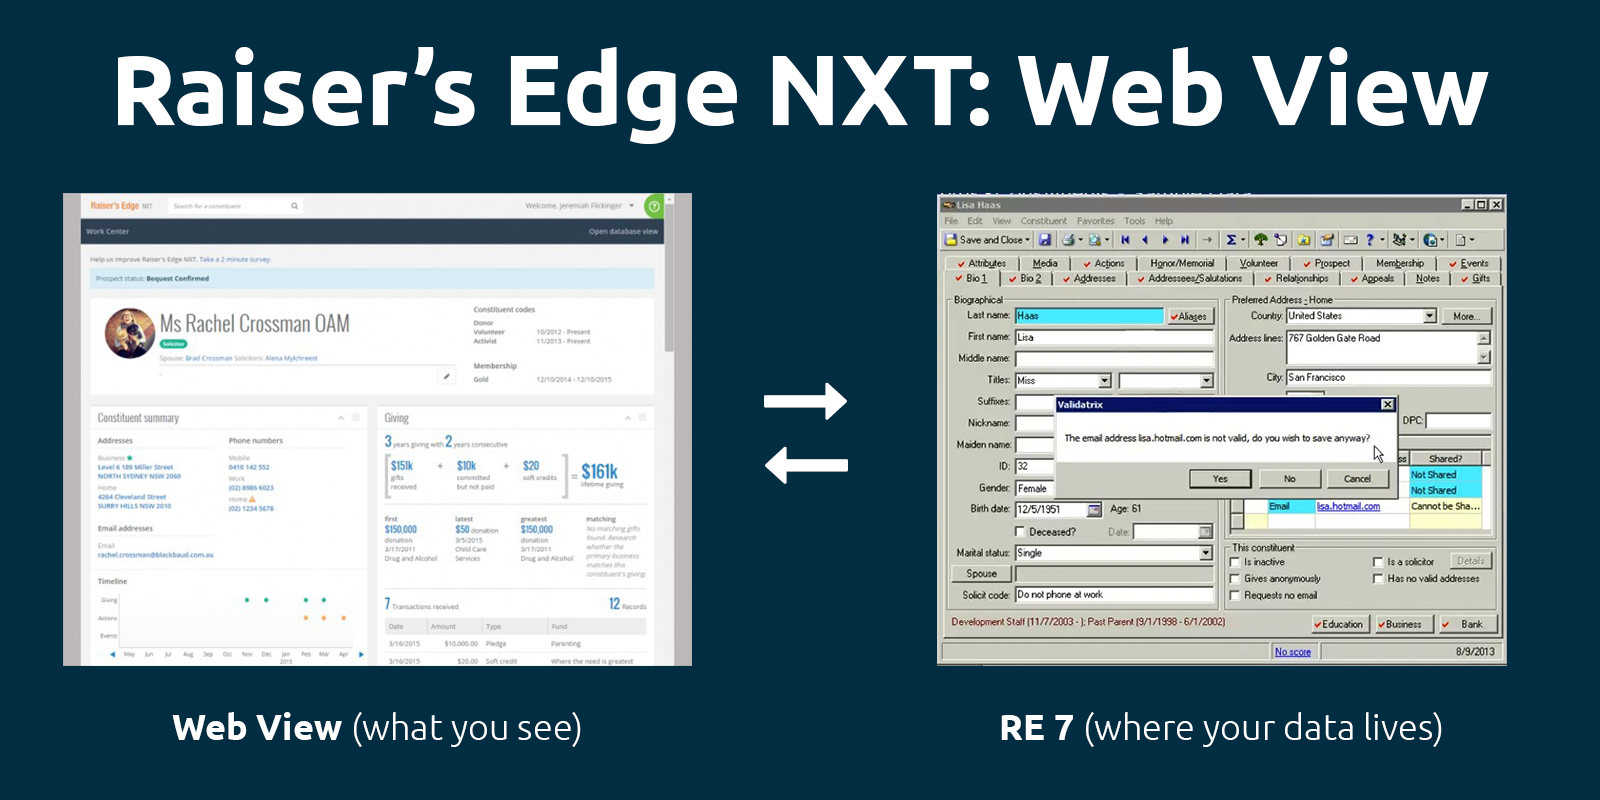 Raiser's Edge NXT uses a cloud-based web view to display your data from Raiser's Edge 7 in a more user-friendly interface.